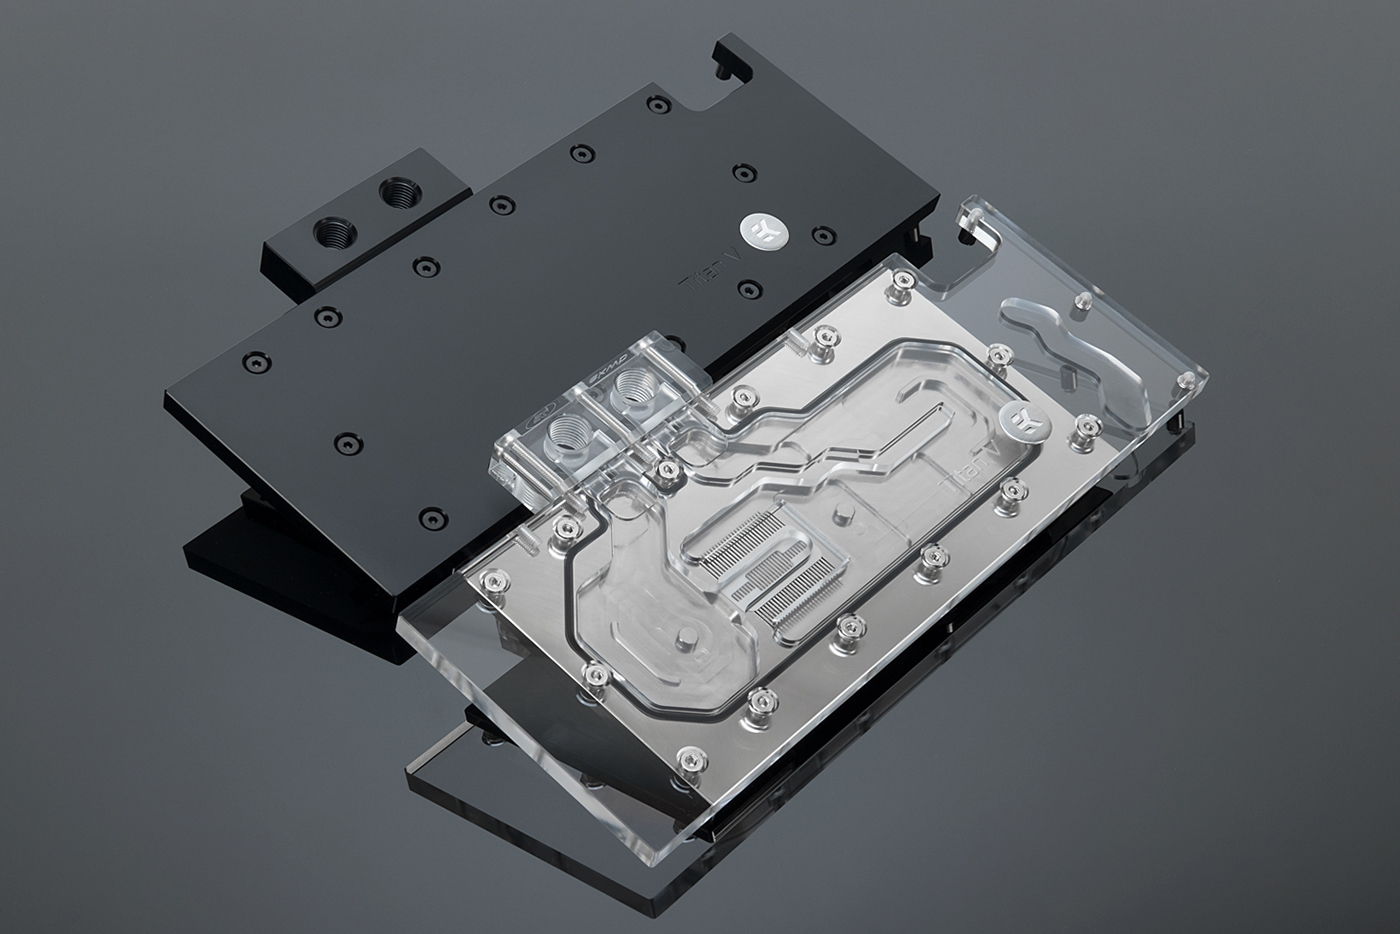 EK released their EK-FC Titan V water block